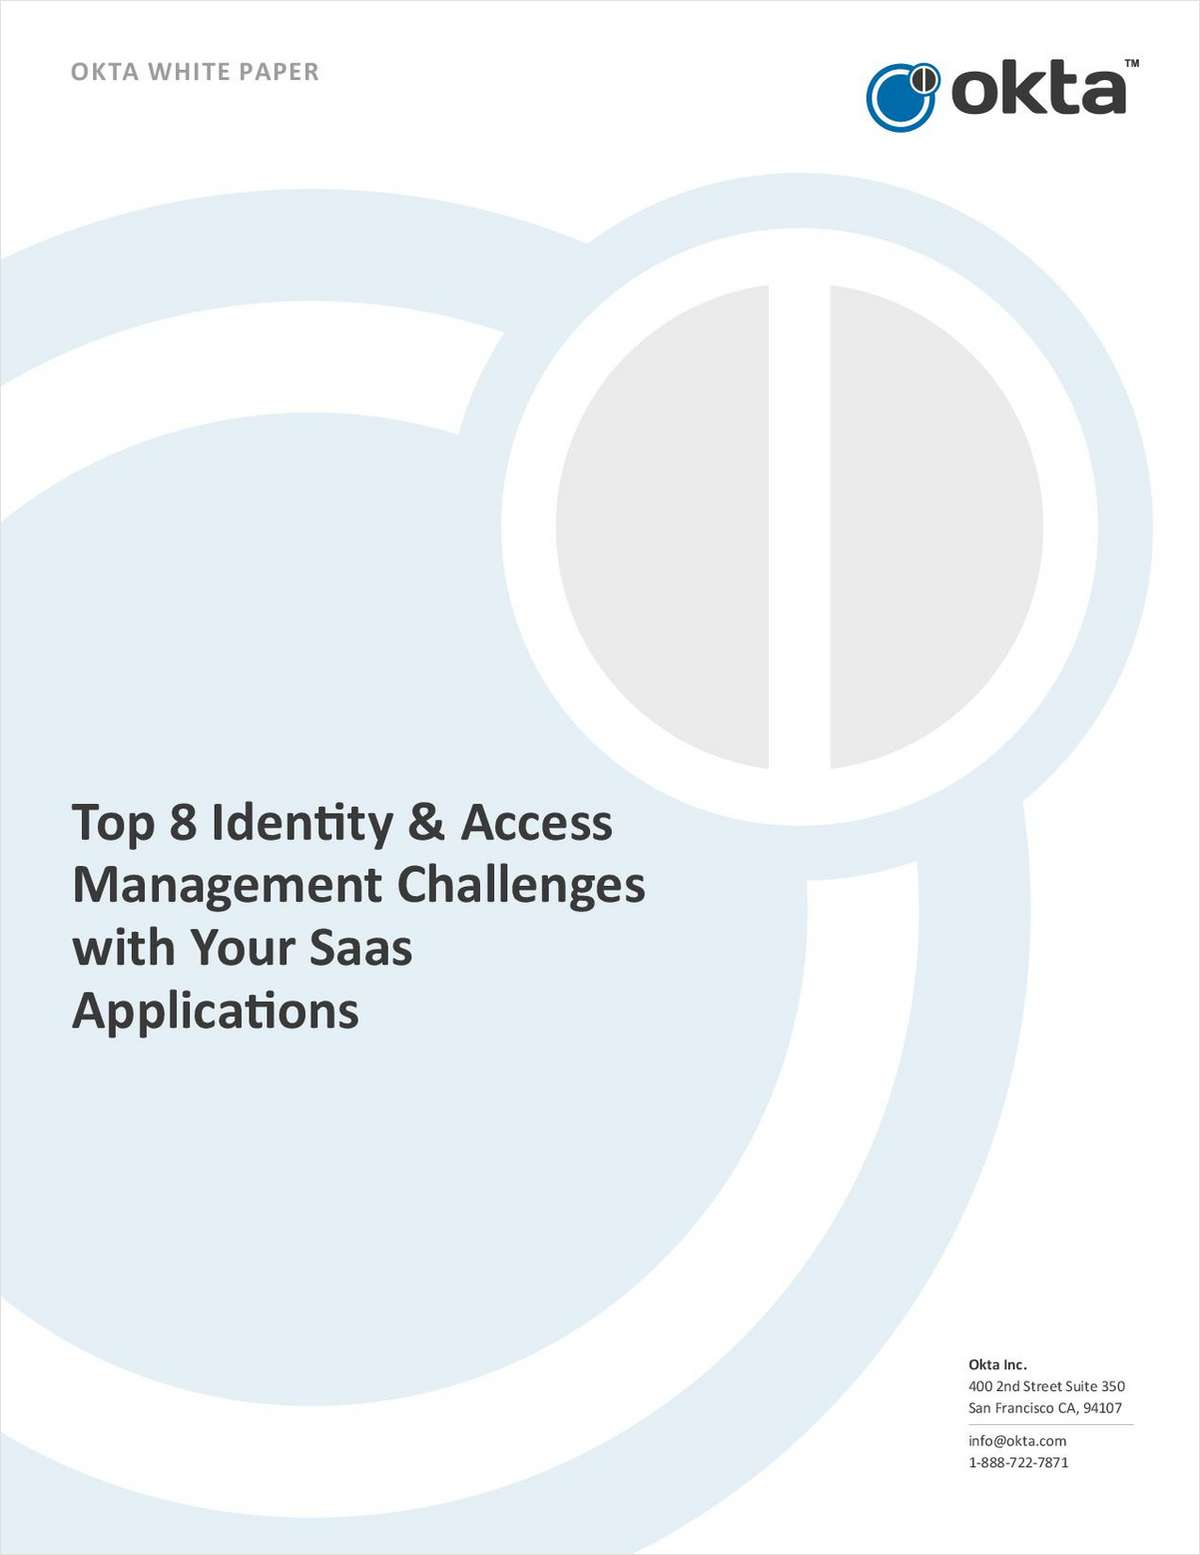 Top Eight Identity & Access Management Challenges with SaaS Applications